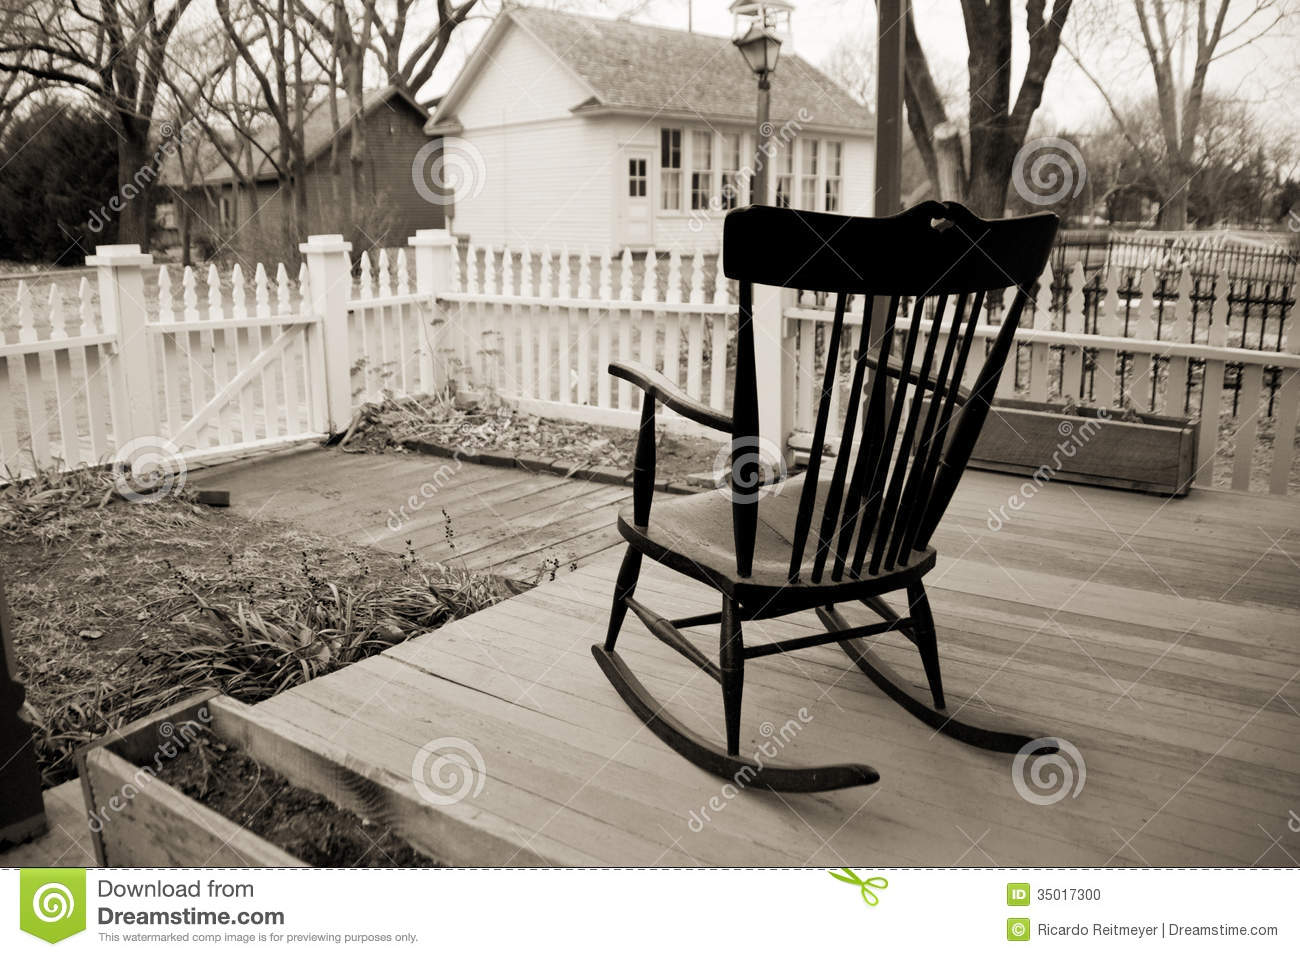 Old Rocking Chair On Wooden Porch With White Picket Fence